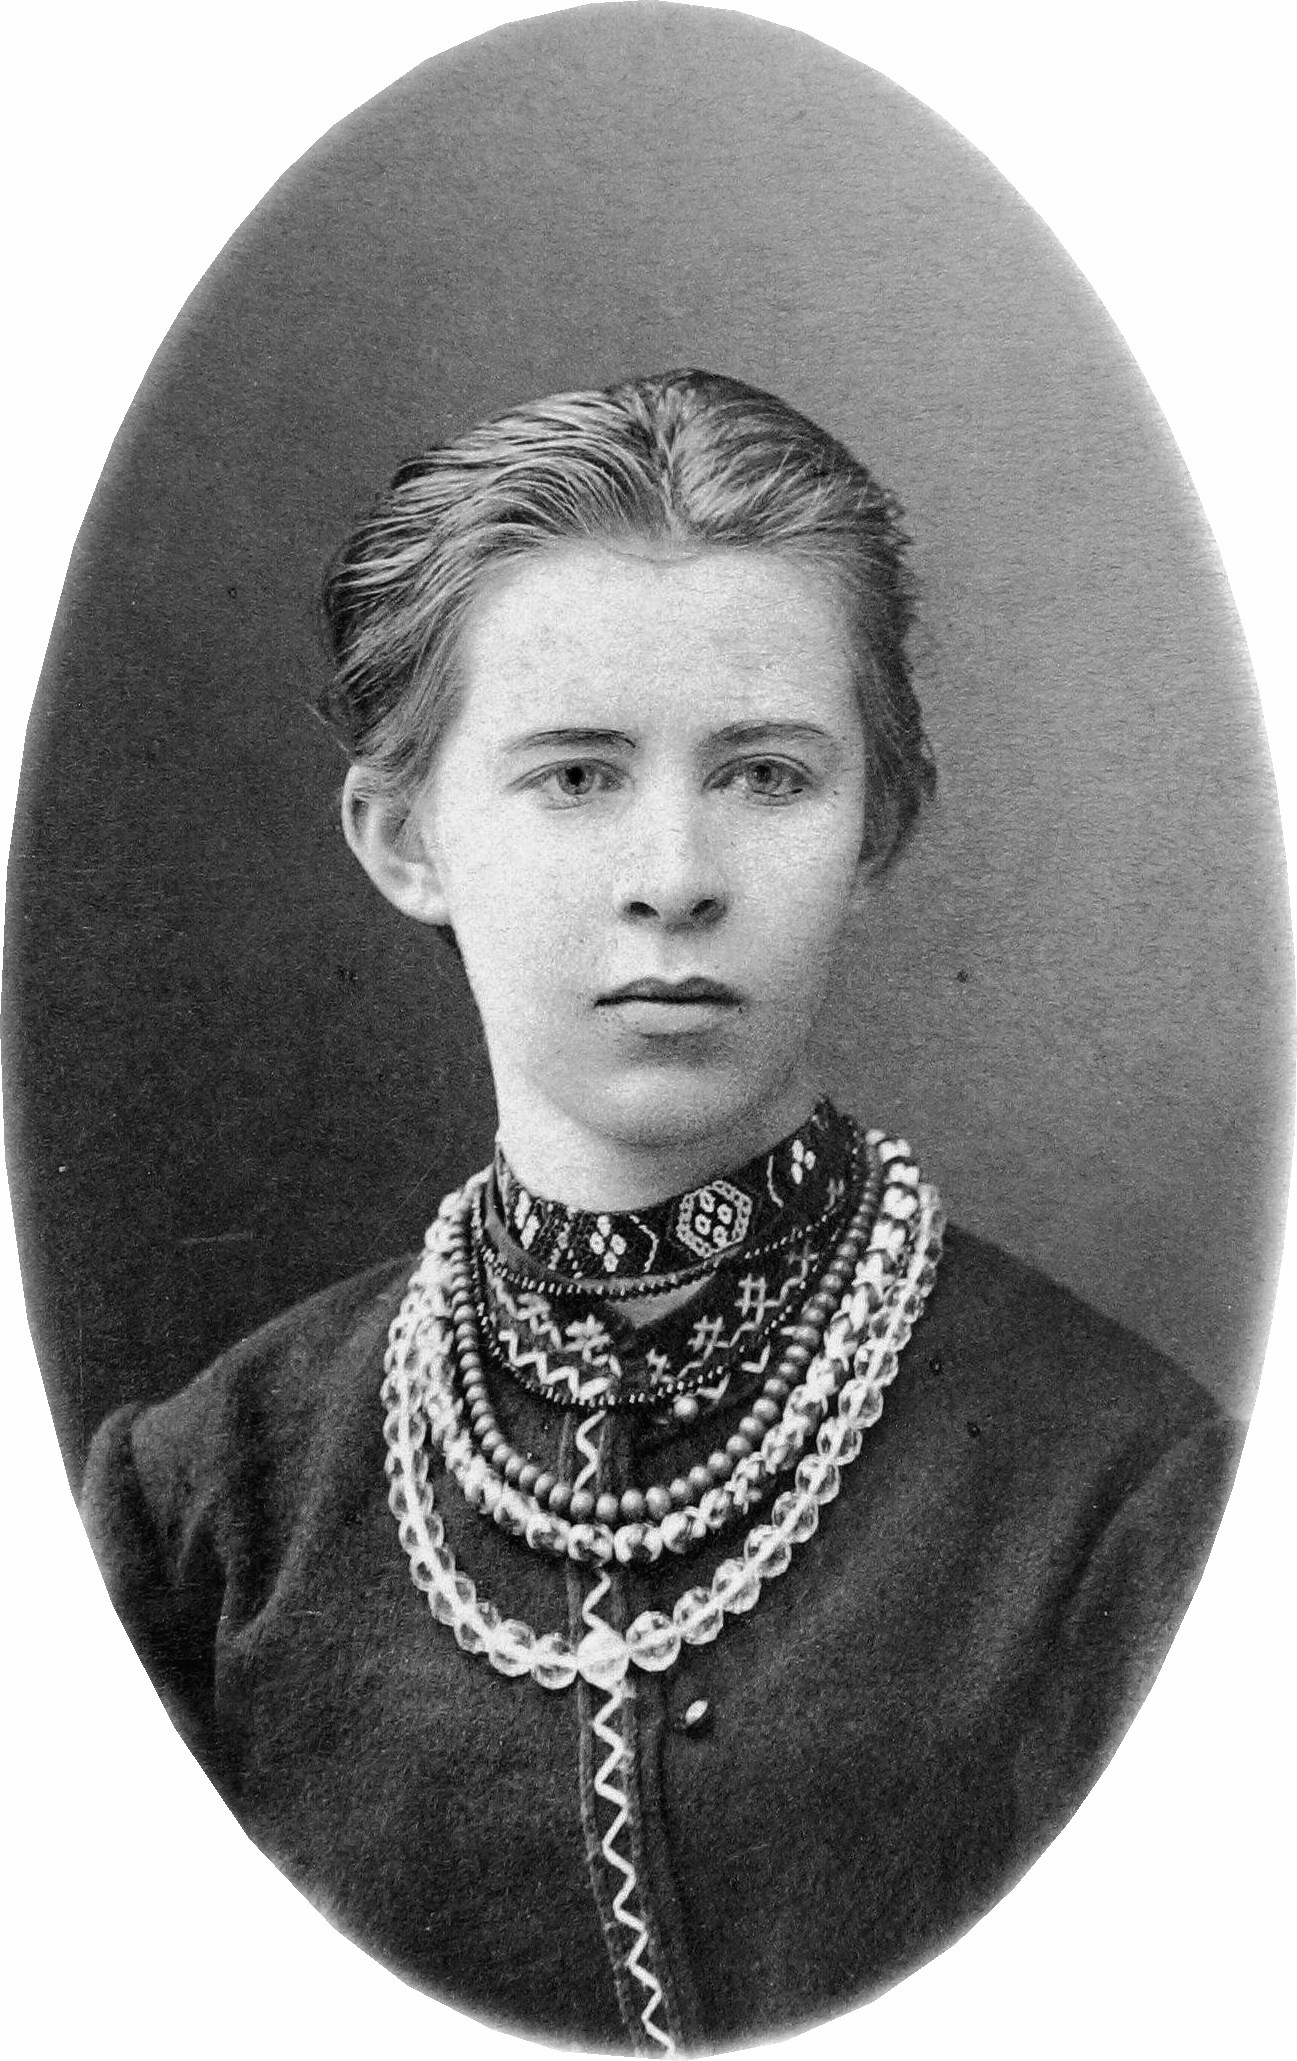 https://upload.wikimedia.org/wikipedia/commons/d/d5/Lesya_Ukrainka_portrait.jpg